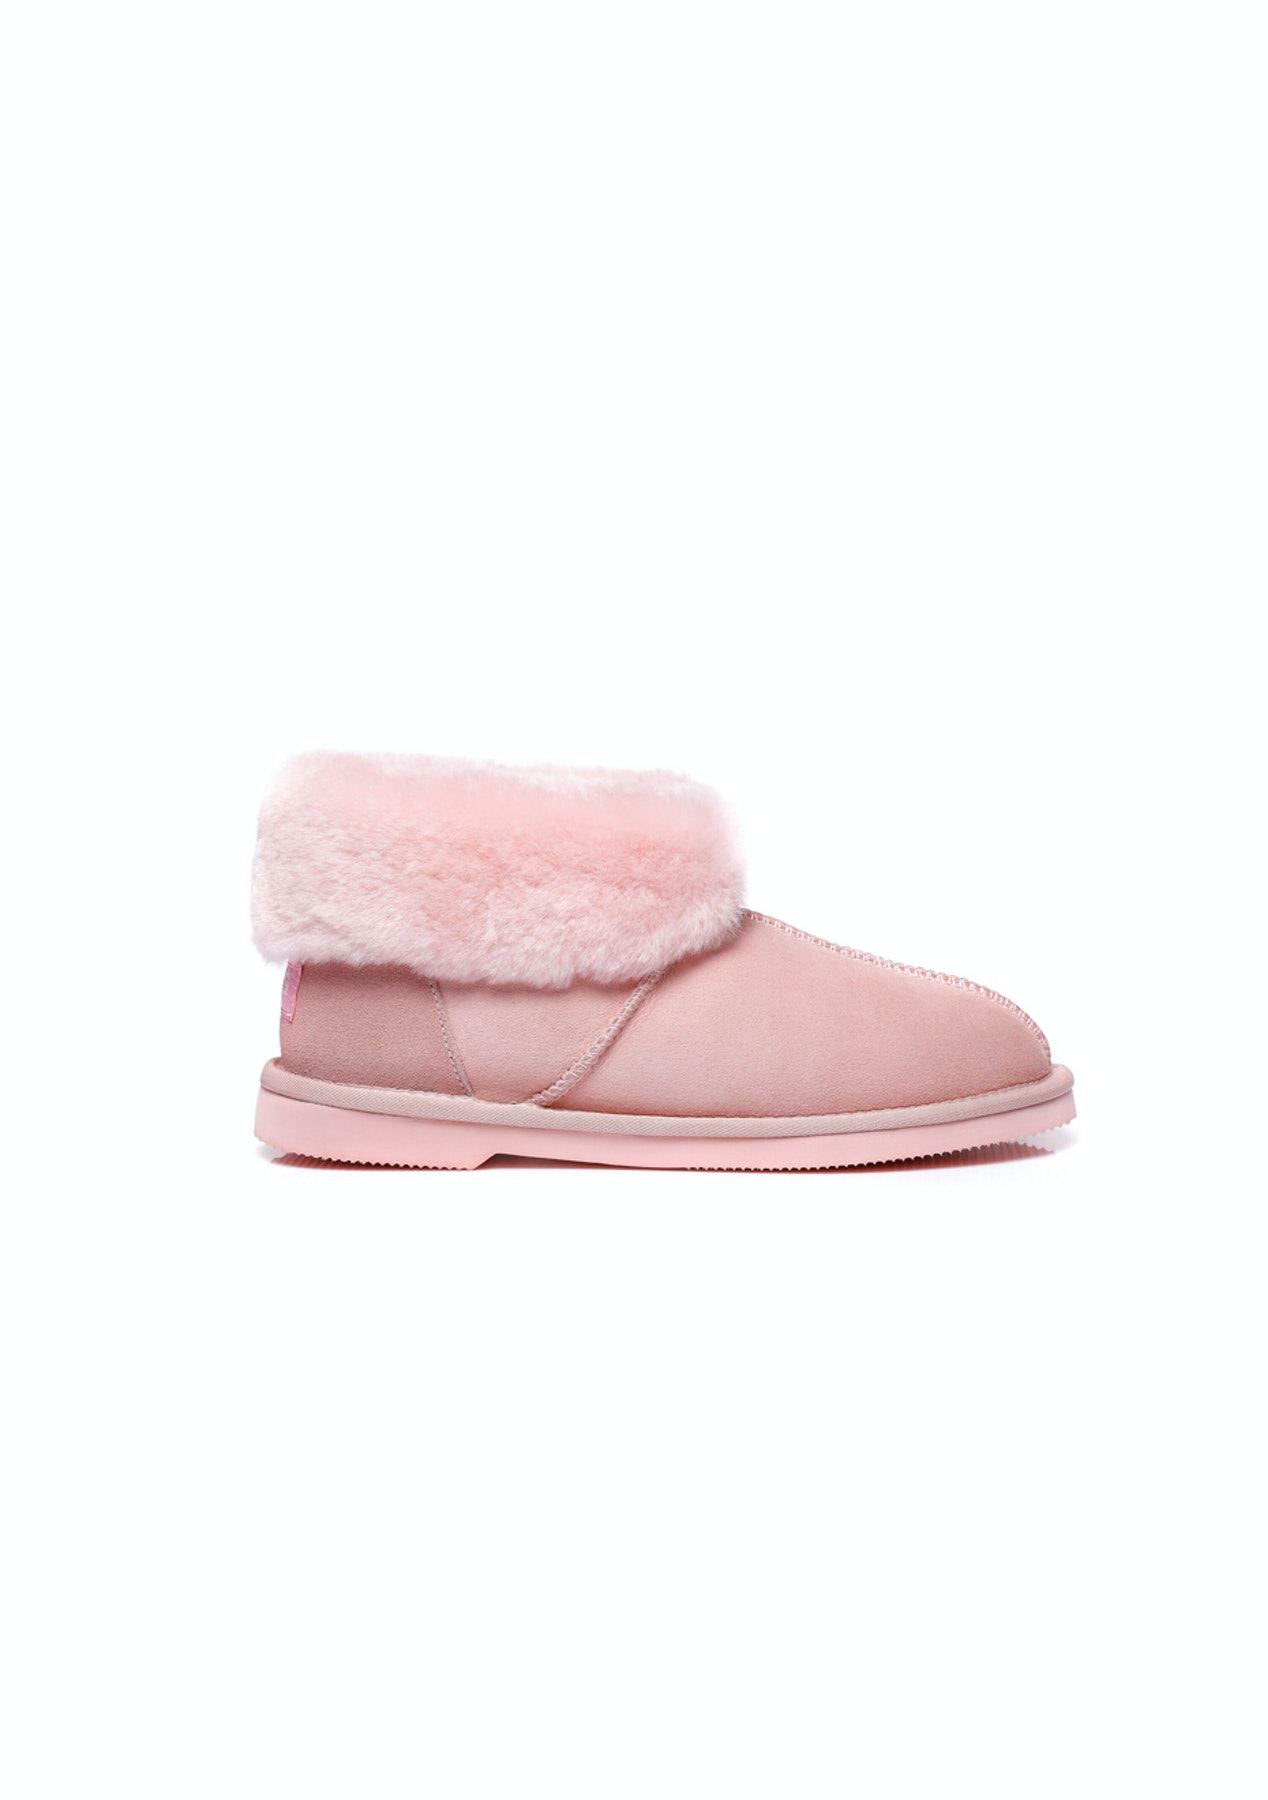 83a2812dab8 Pink ugg slippers Pink ugg slide on slippers Worn a handful of times